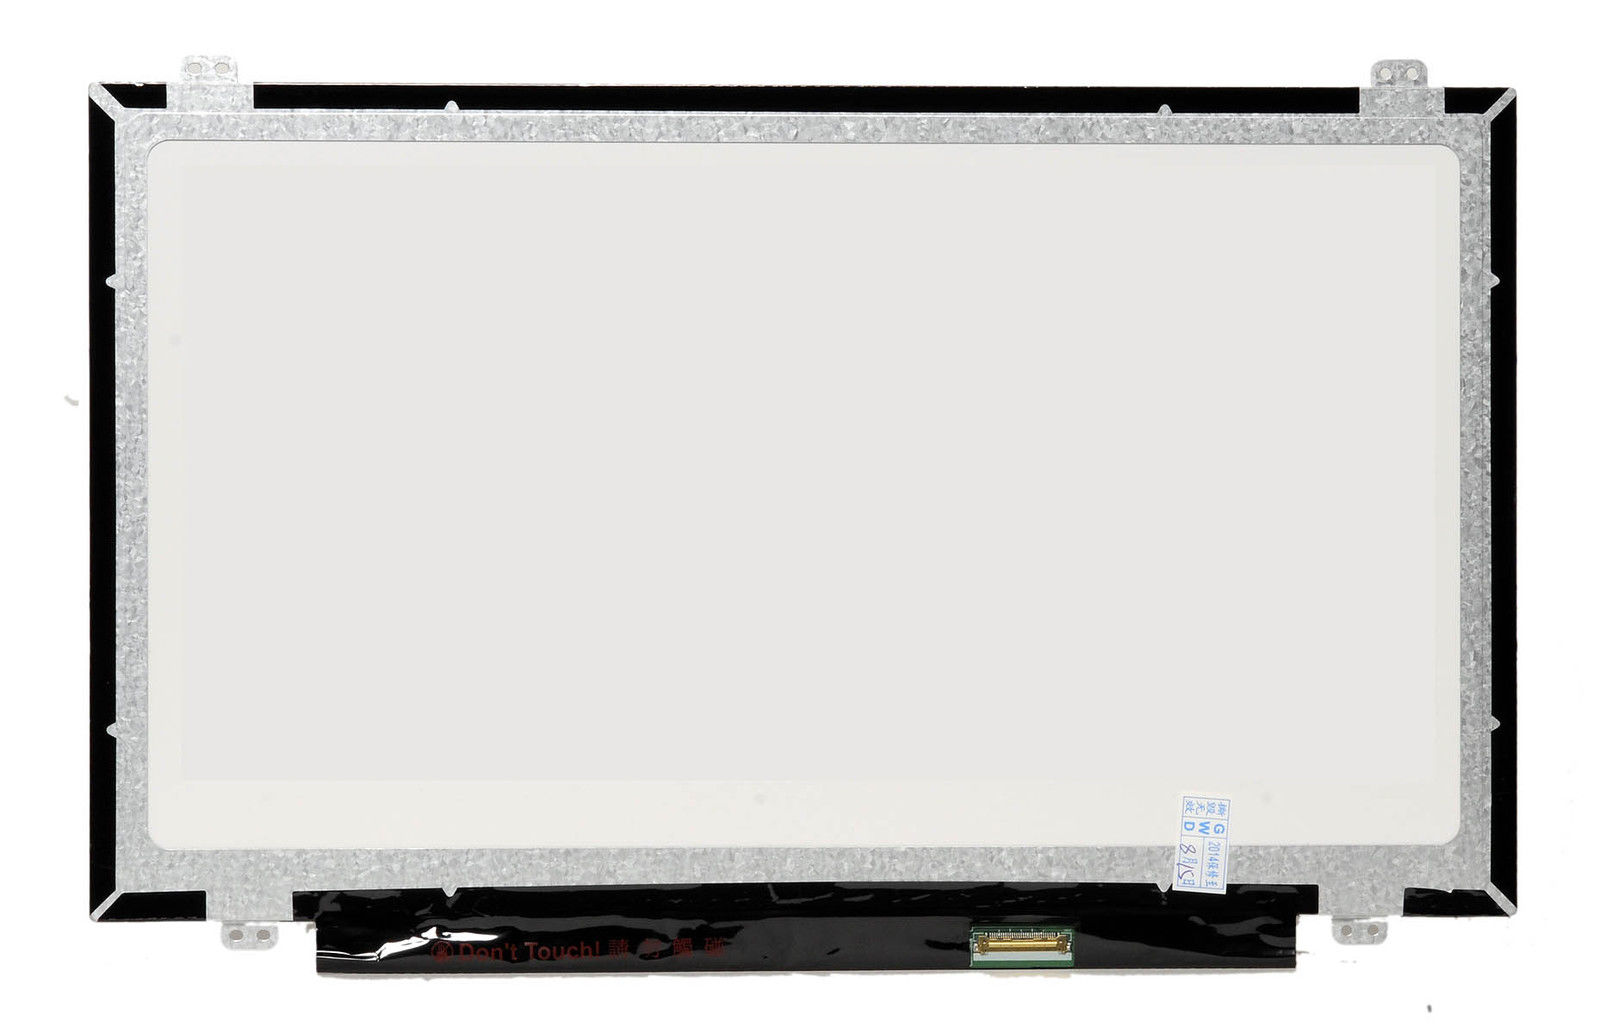 N140BGE-E43 New 14.0 WXGA HD Slim LED LCD Screen 30 Pin eDP Laptop DisplayN140BGE-E43 New 14.0 WXGA HD Slim LED LCD Screen 30 Pin eDP Laptop Display